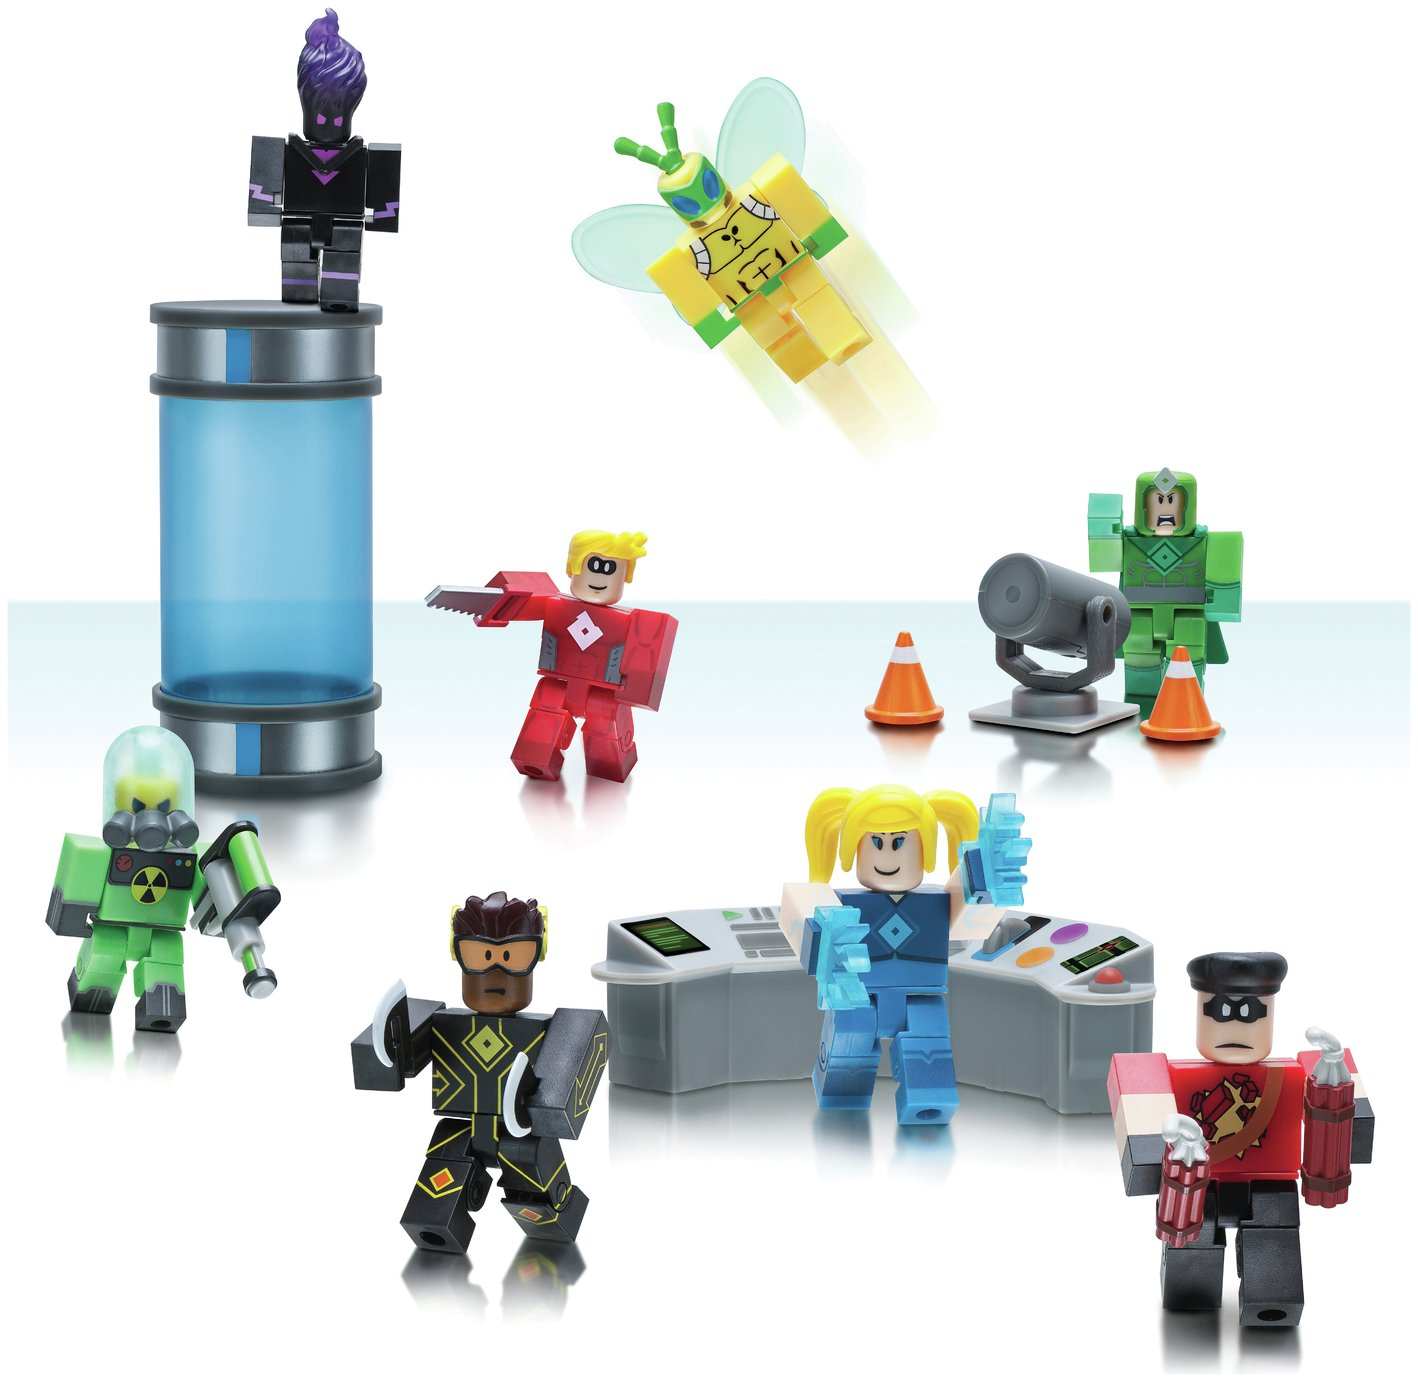 Roblox - Heroes of Robloxia - Feature Playset